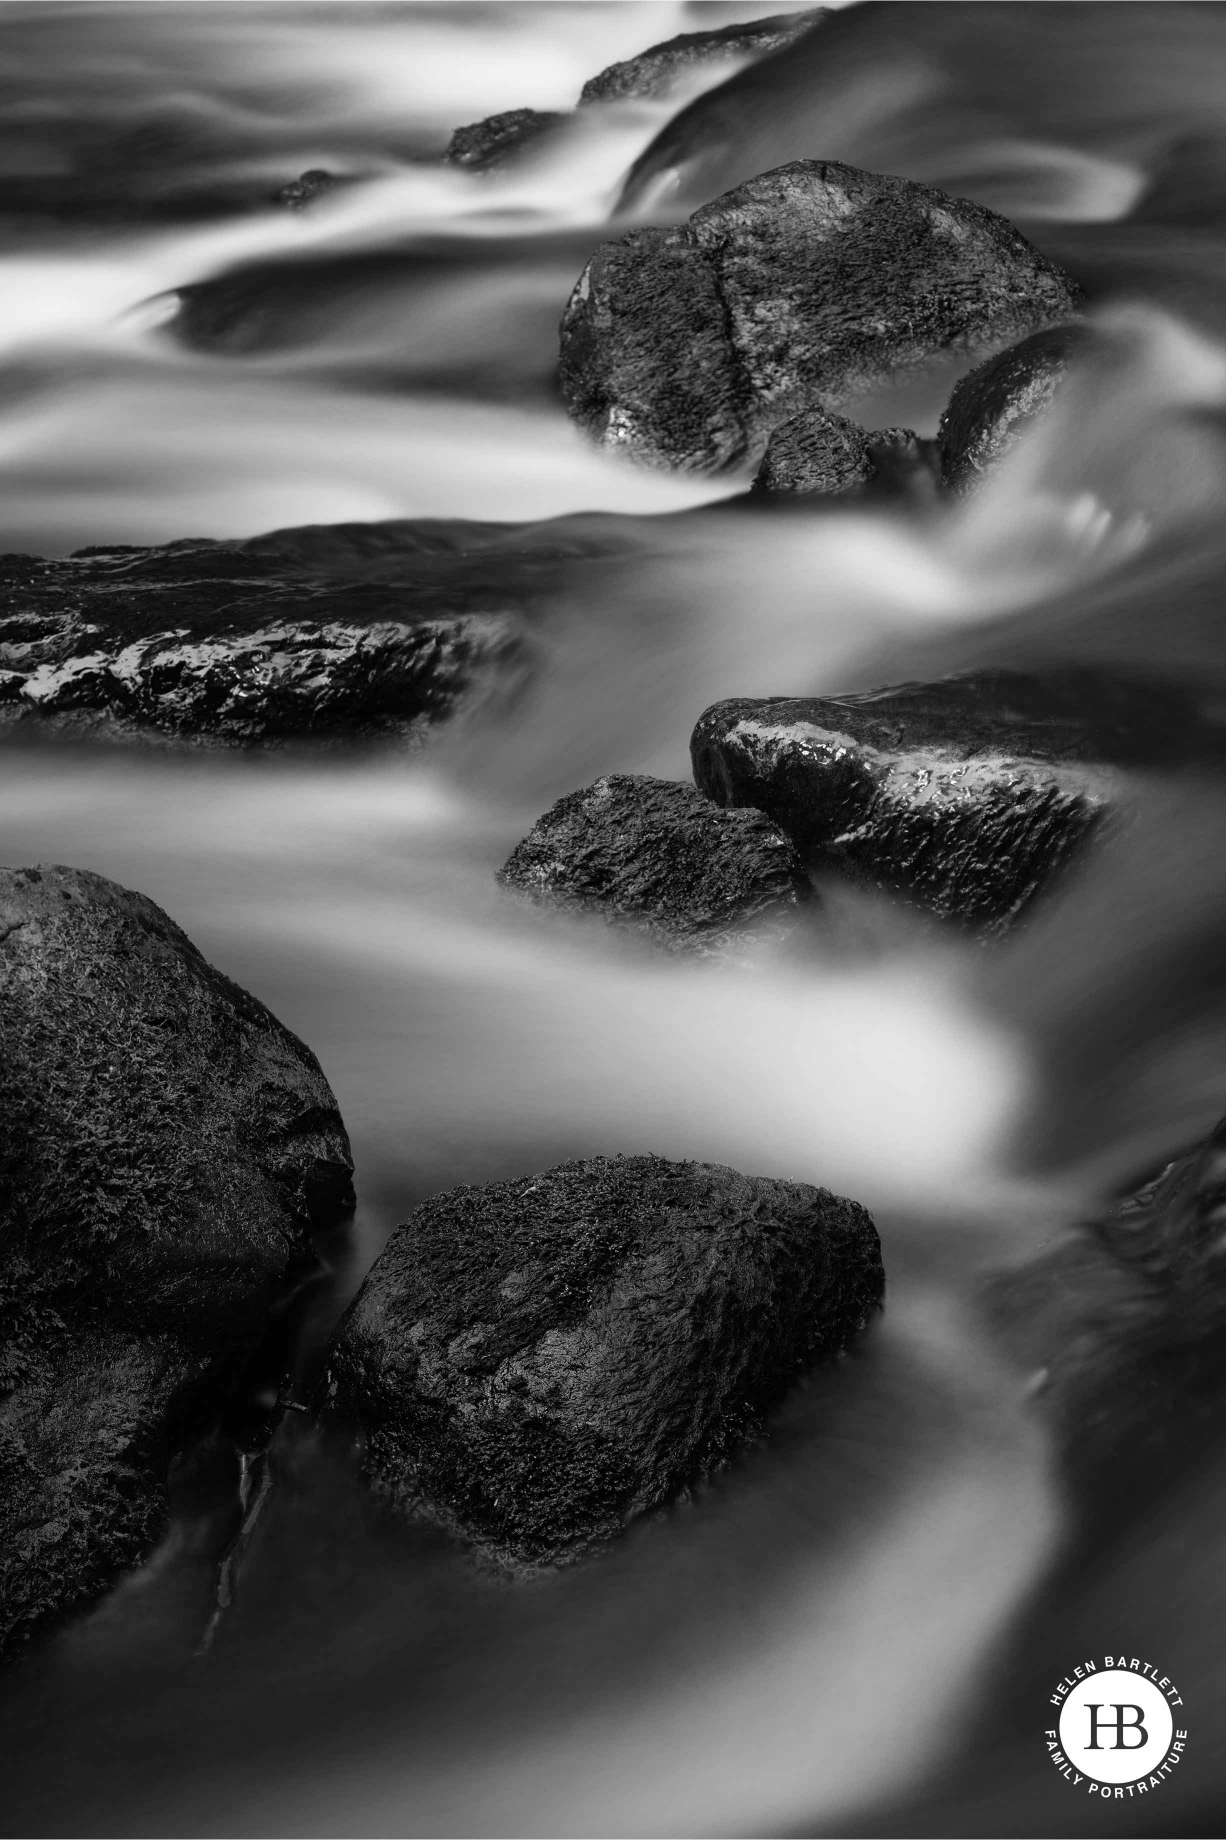 Slow shutter speed stream photo in black and white taken with a Canon tilt-shift lens.